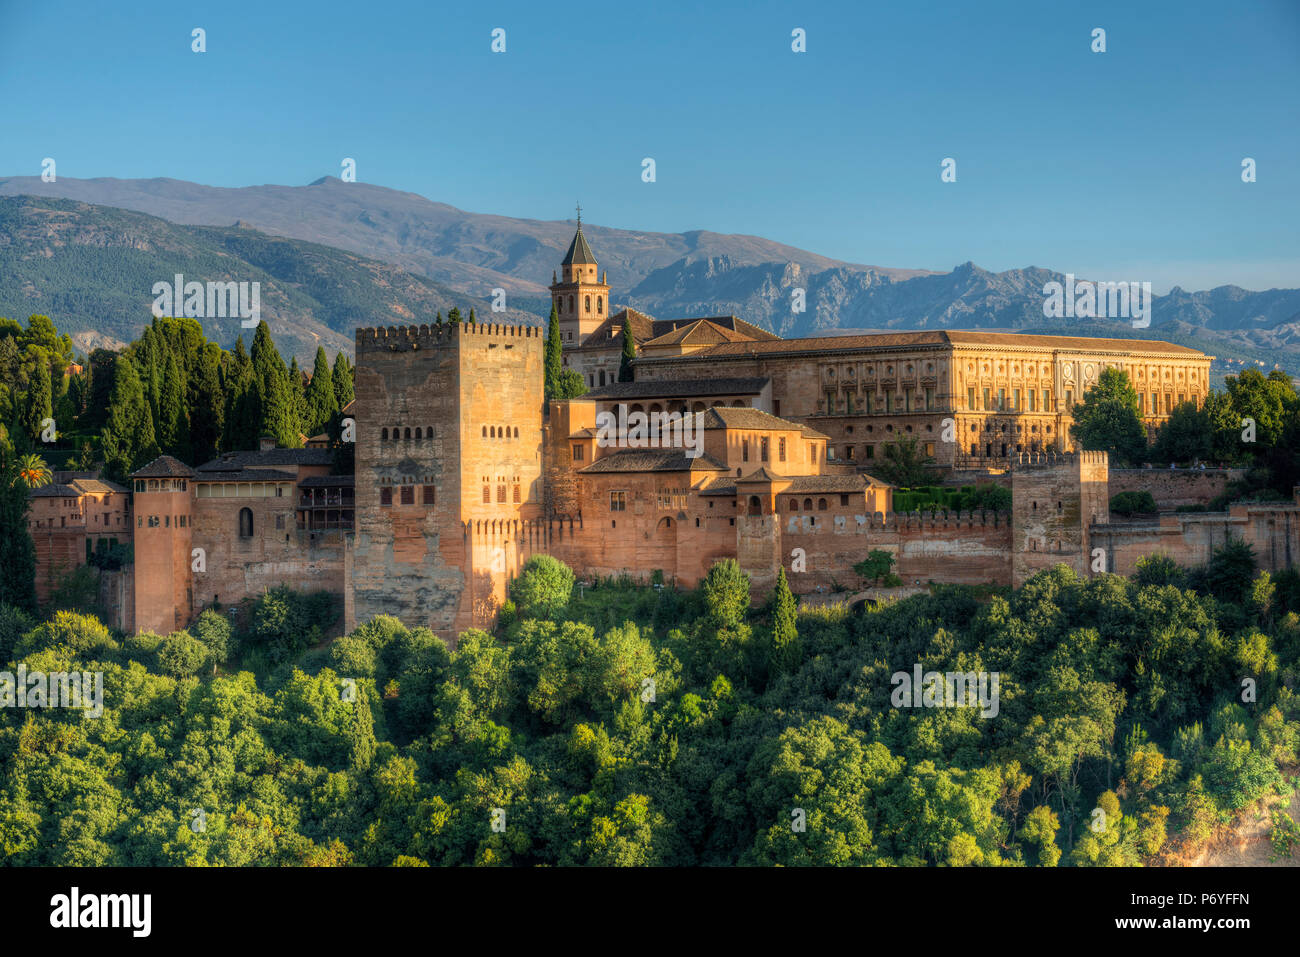 Alhambra from Albaicin, UNESCO World Heritage Site, Granada, Andalusia, Spain - Stock Image